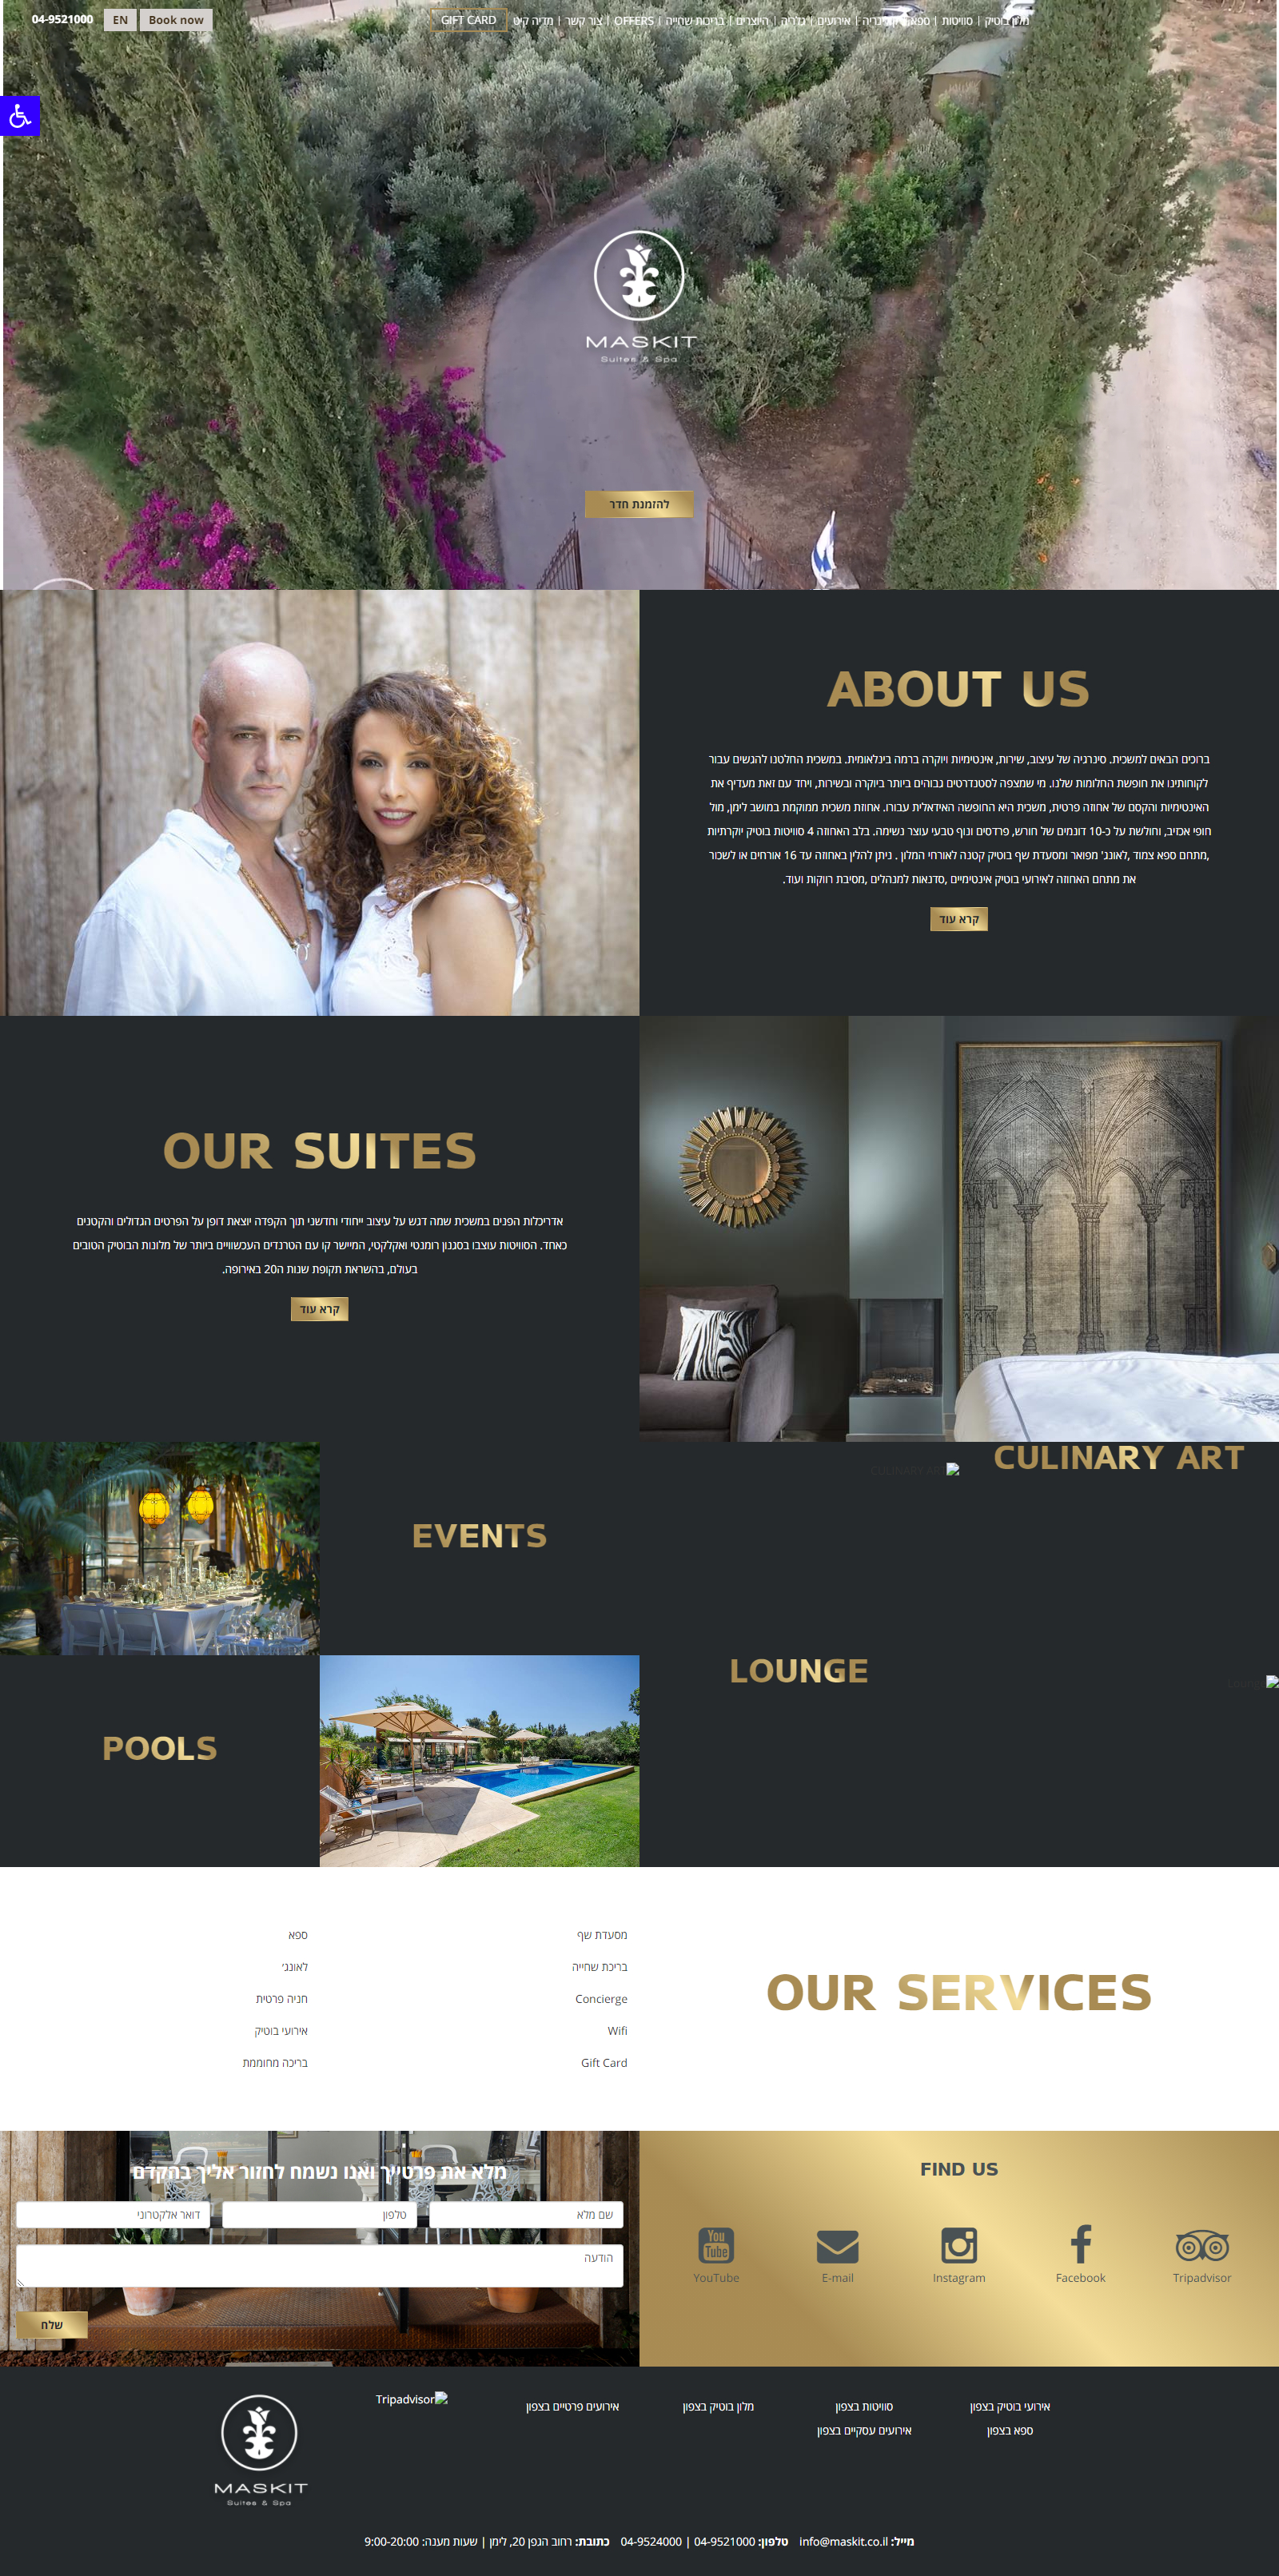 Maskit Boutique Hotel and Spa - English